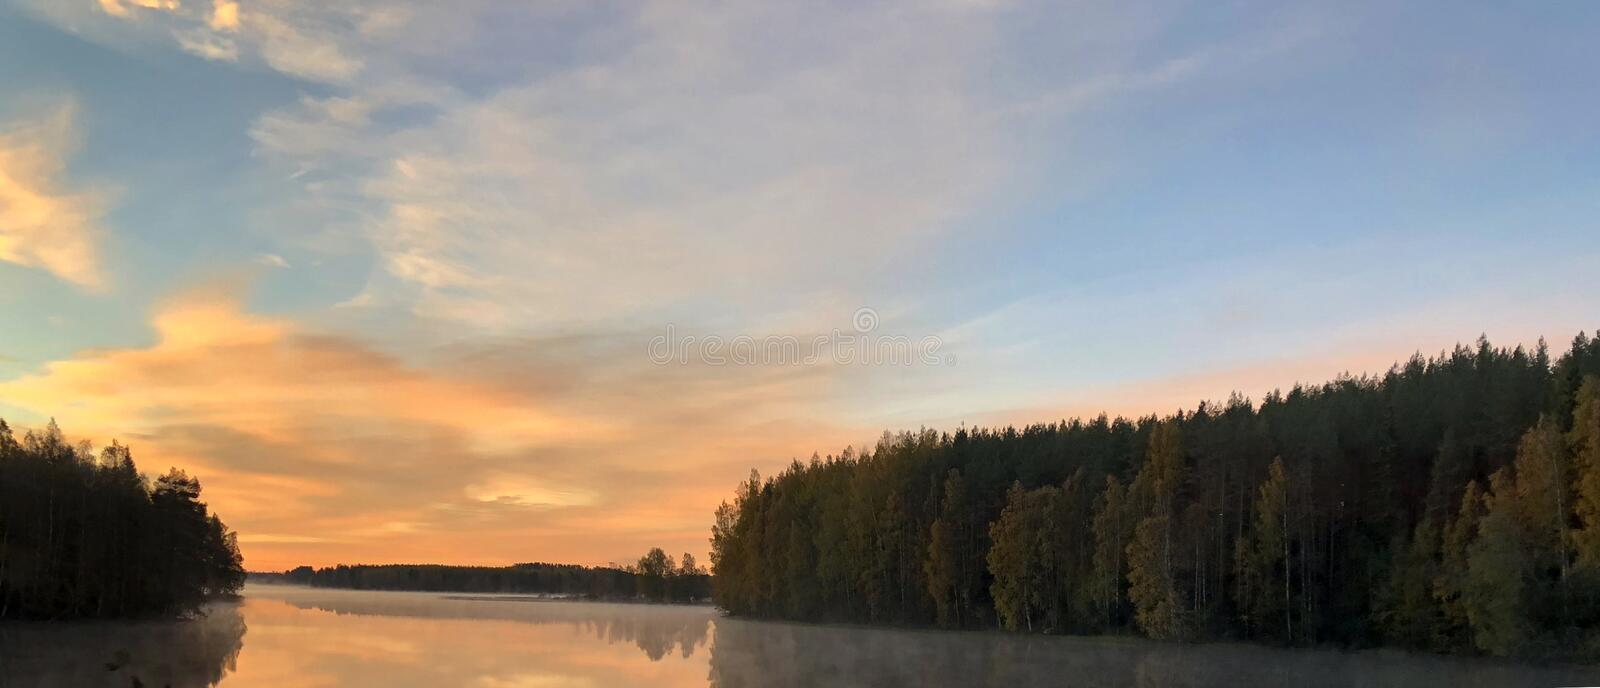 Reflection of the shore in the water and very bright fiery clouds royalty free stock photography